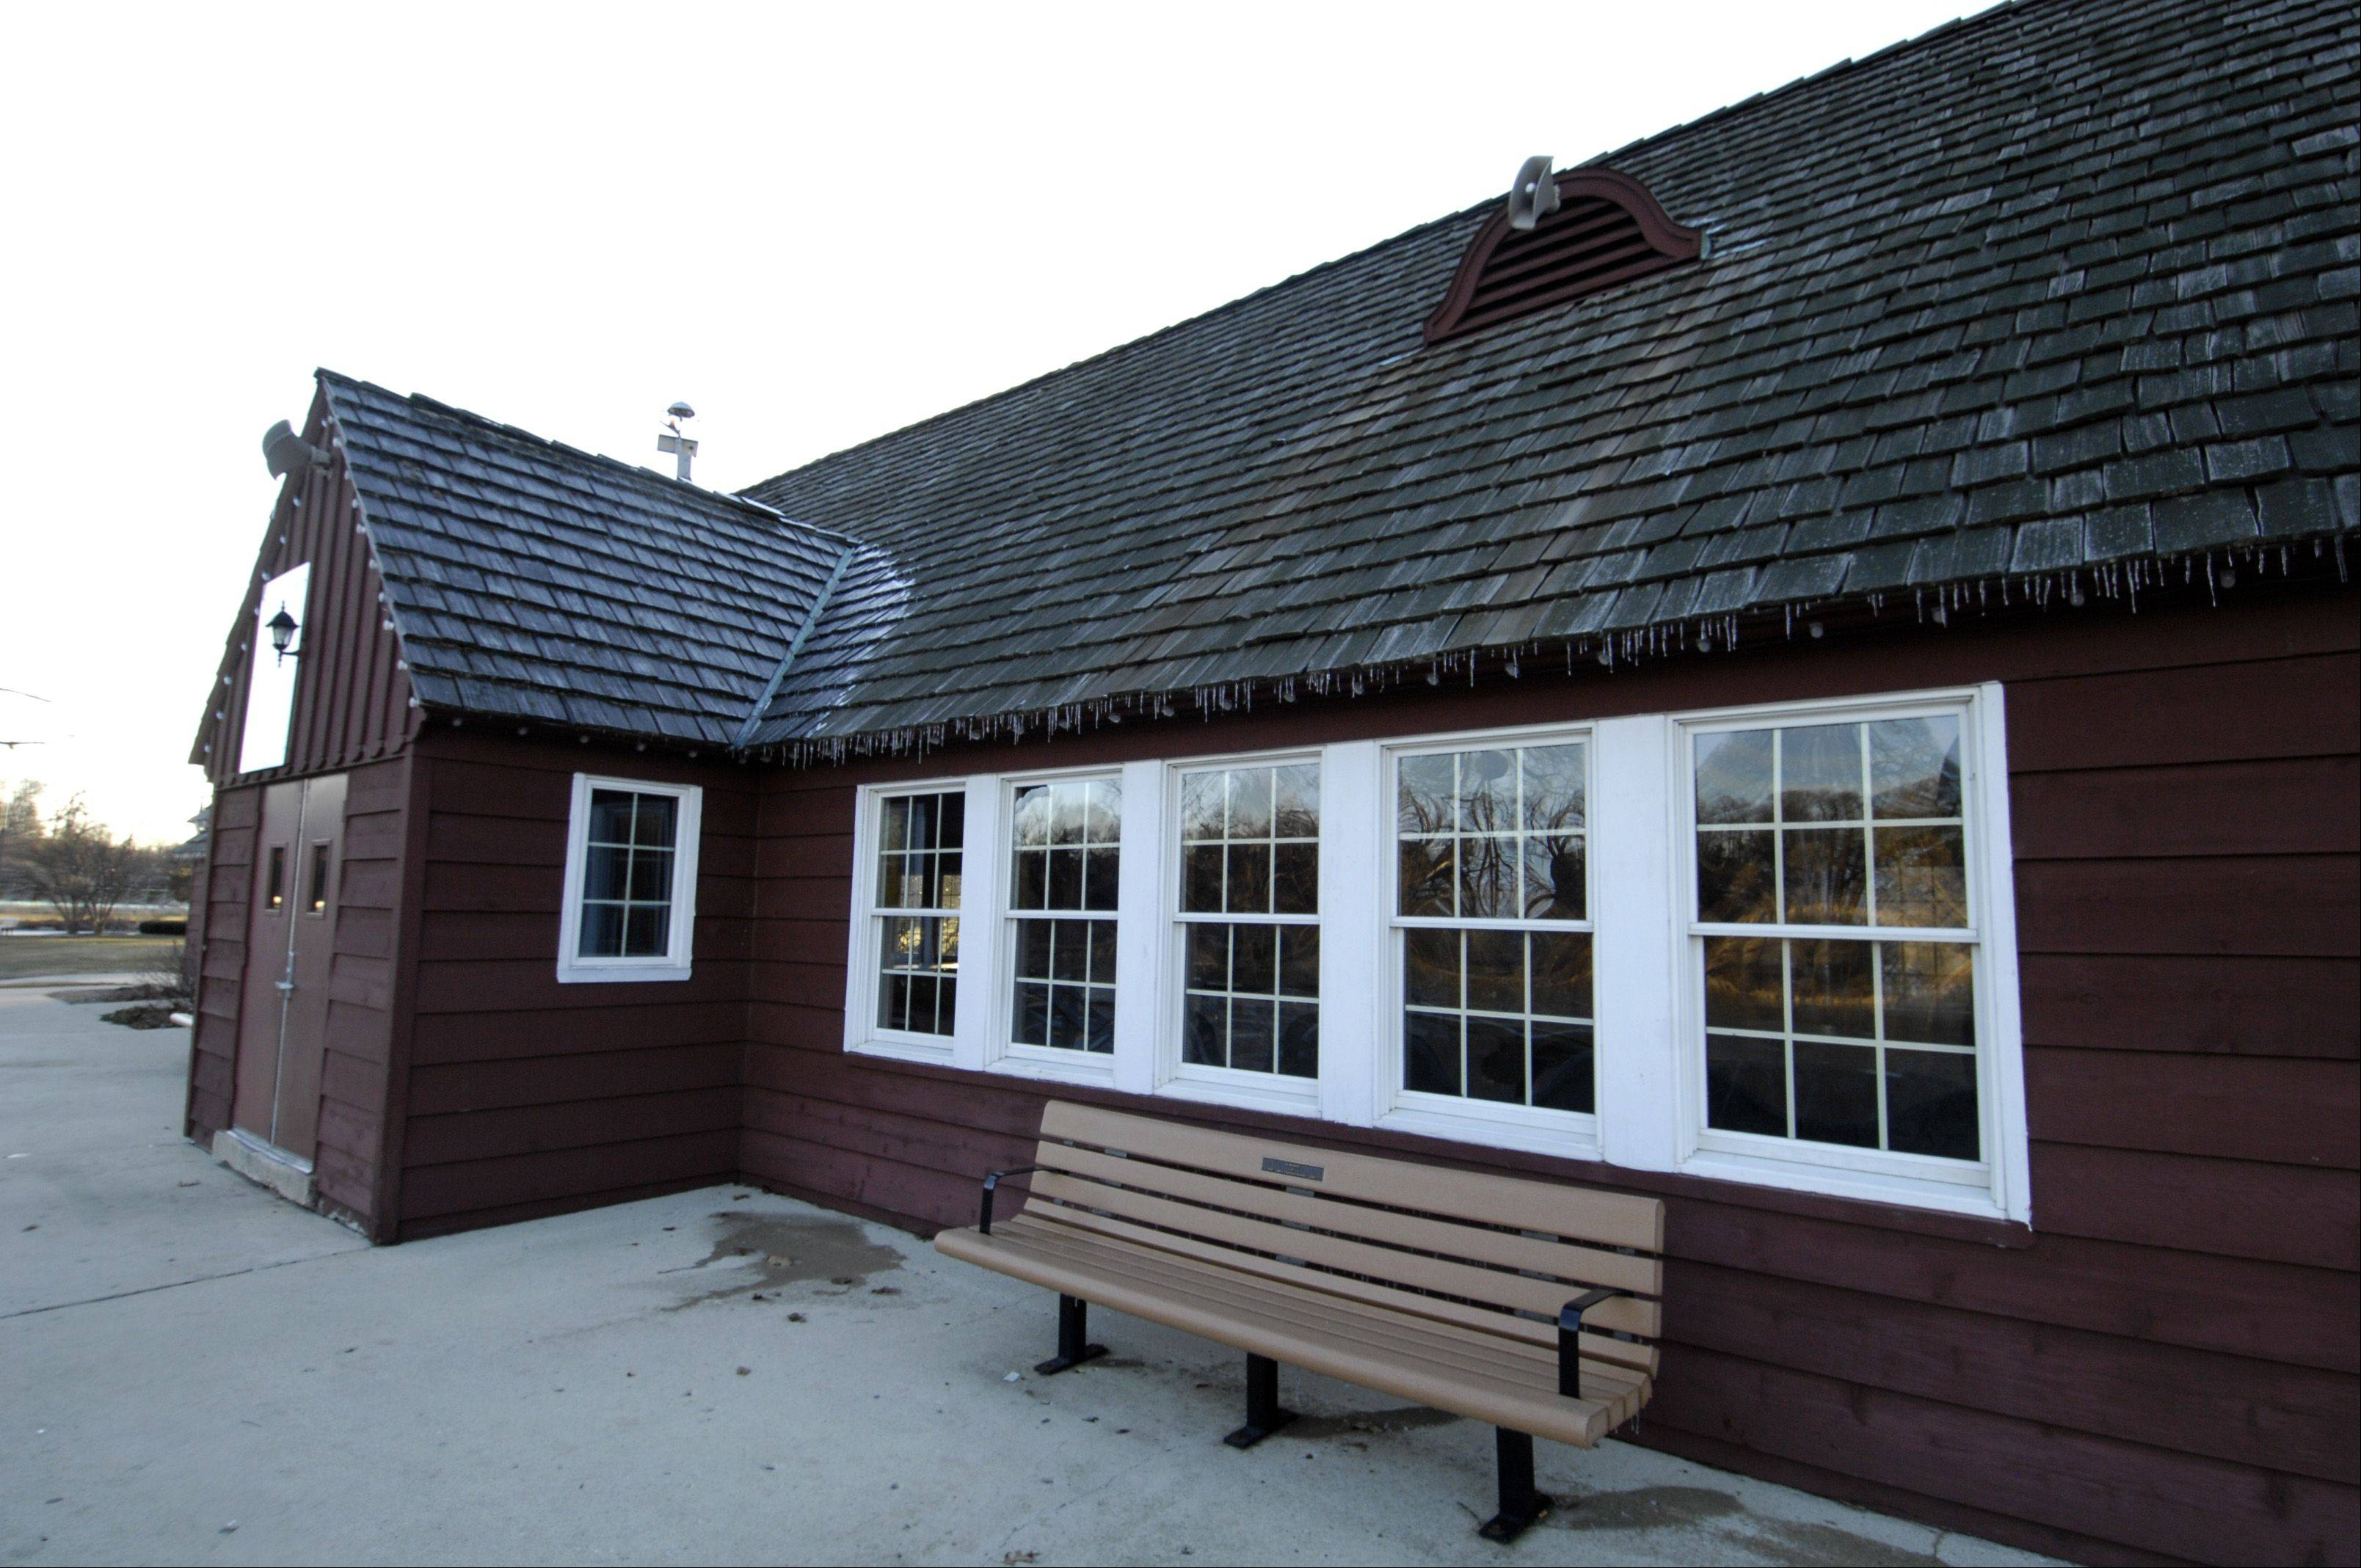 The 75-year-old Lake Ellyn Boathouse in Glen Ellyn could undergo some $581,000 in renovations, proposed as part of the Glen Ellyn Park District's master plan for Lake Ellyn.